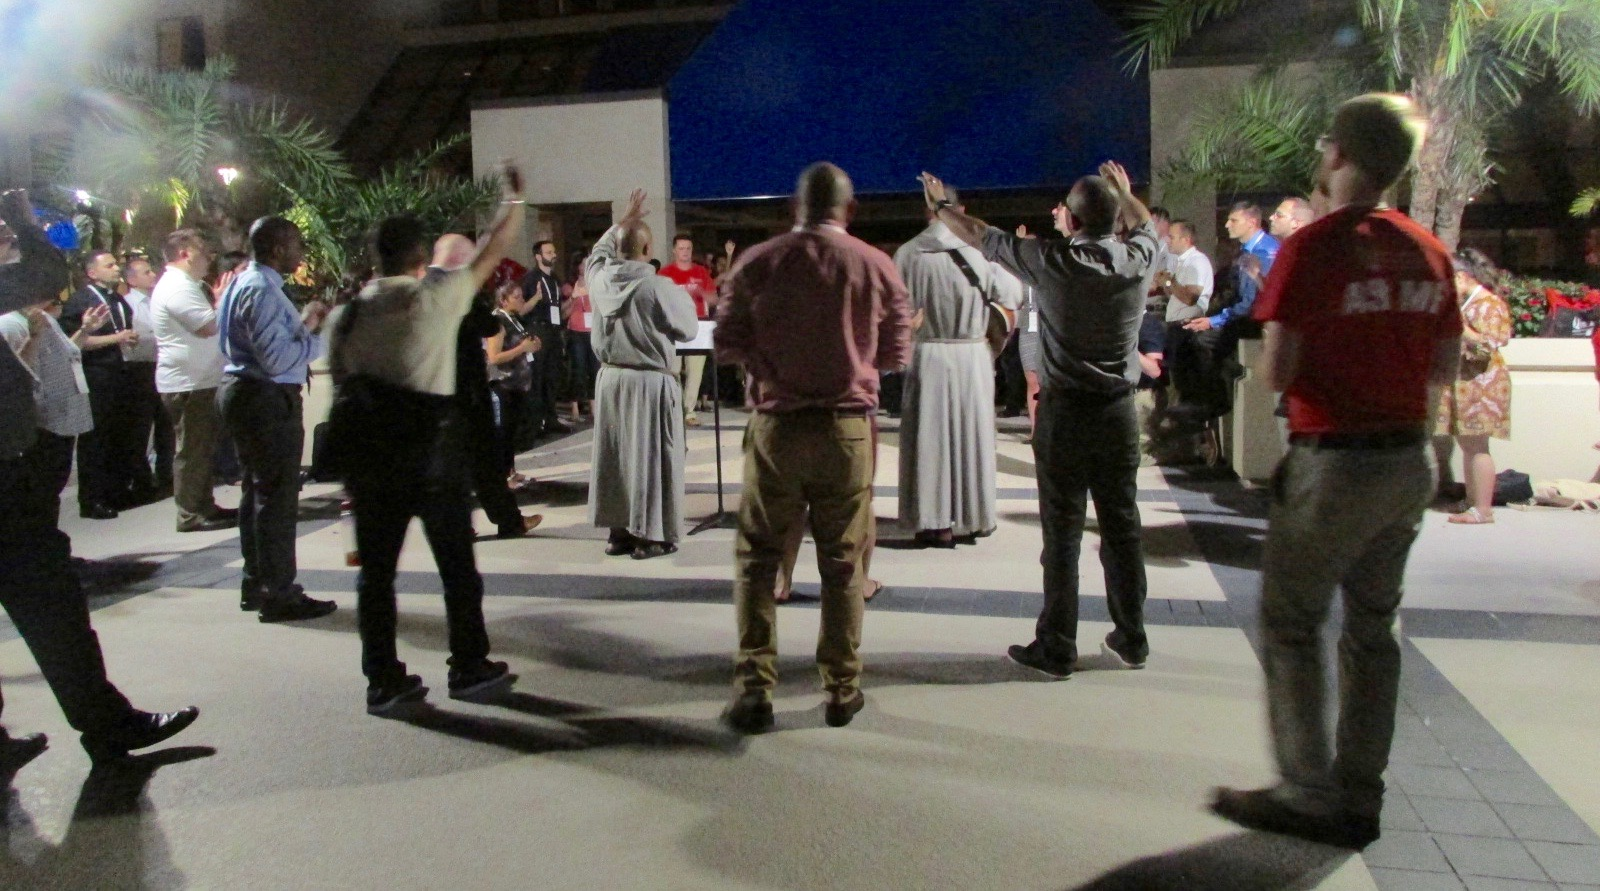 About 75 people joined two priests from the Franciscan Friars of the Renewal for impromptu charismatic prayer in a plaza next to a hotel pool one night (CT Photo/Gail Finke)